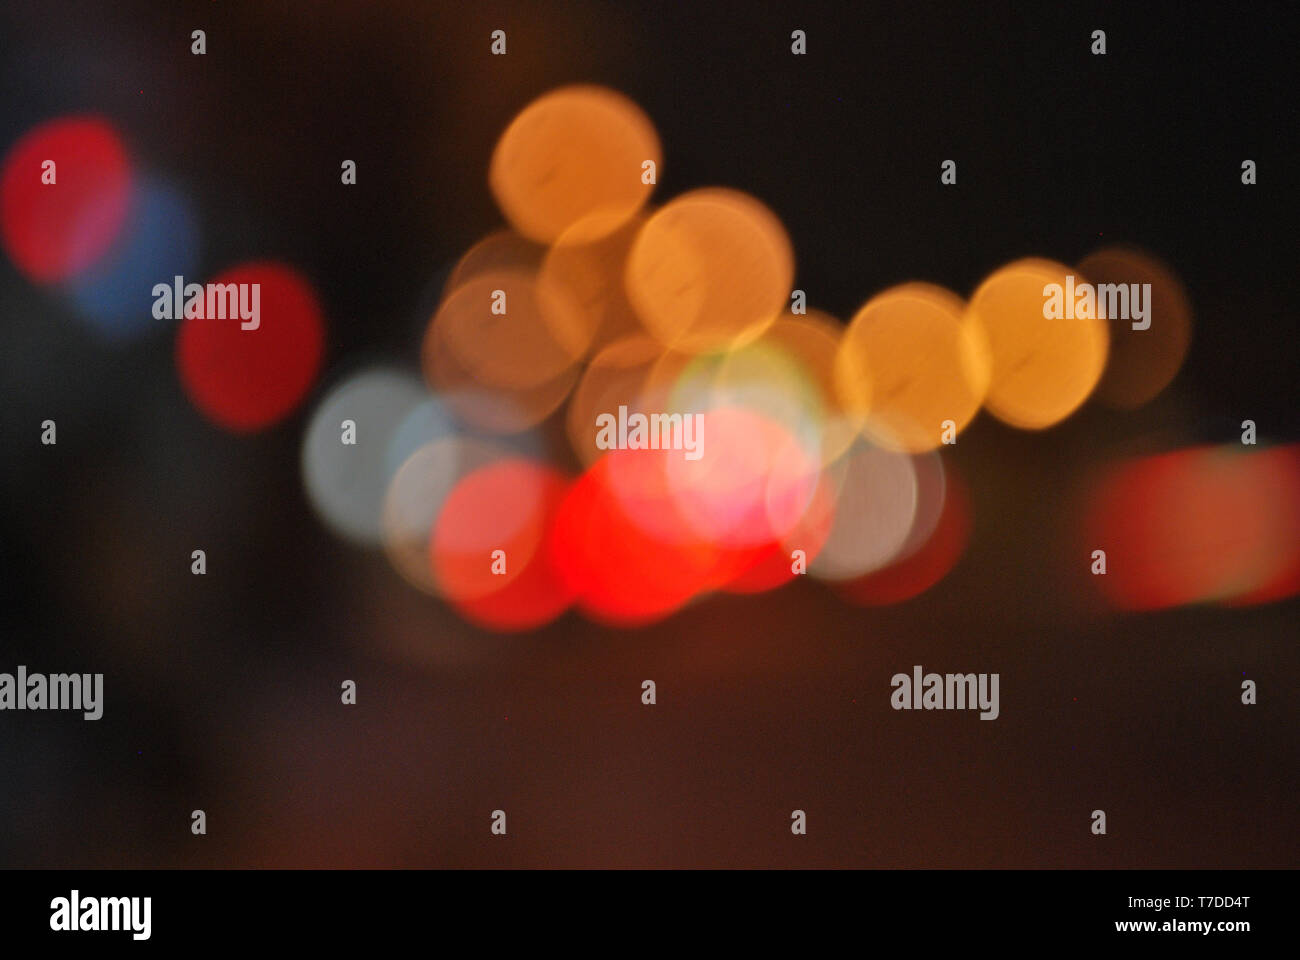 Bokeh images and blurring of street lights and car taillights - Stock Image